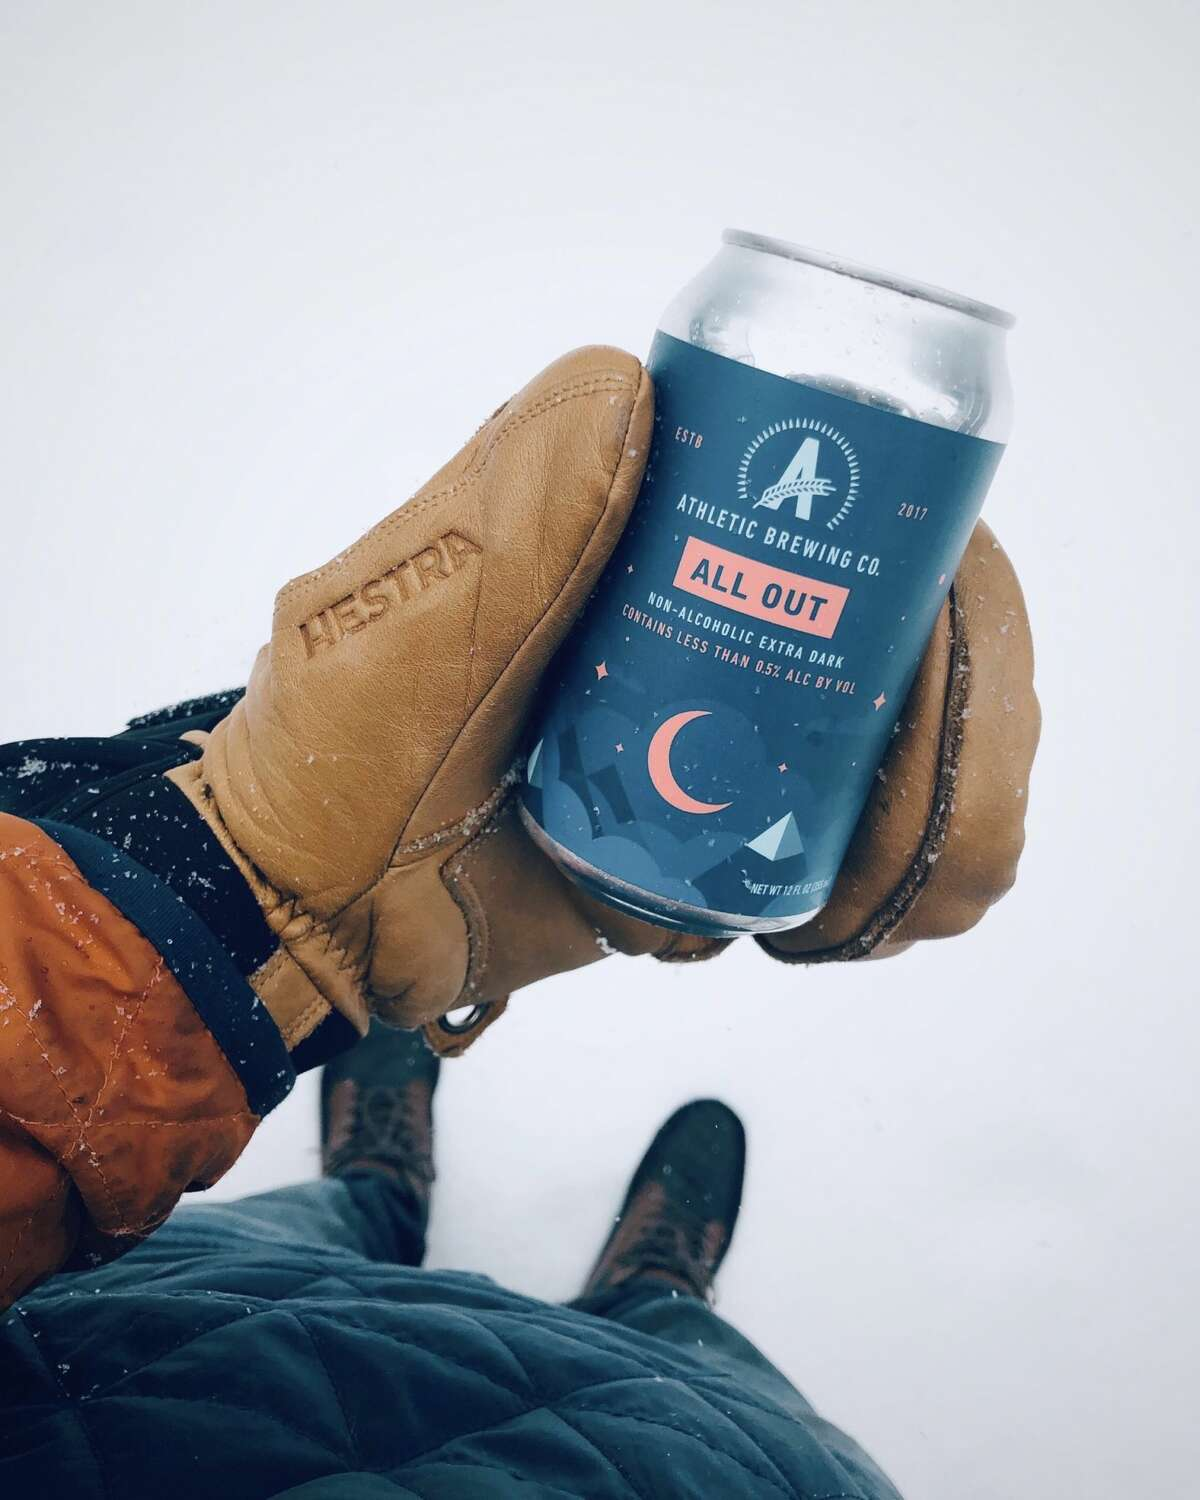 An Athletic Brewing Company beer can. Athletic brewing Company is a nonalcoholic brewery based in Stratford, Conn.